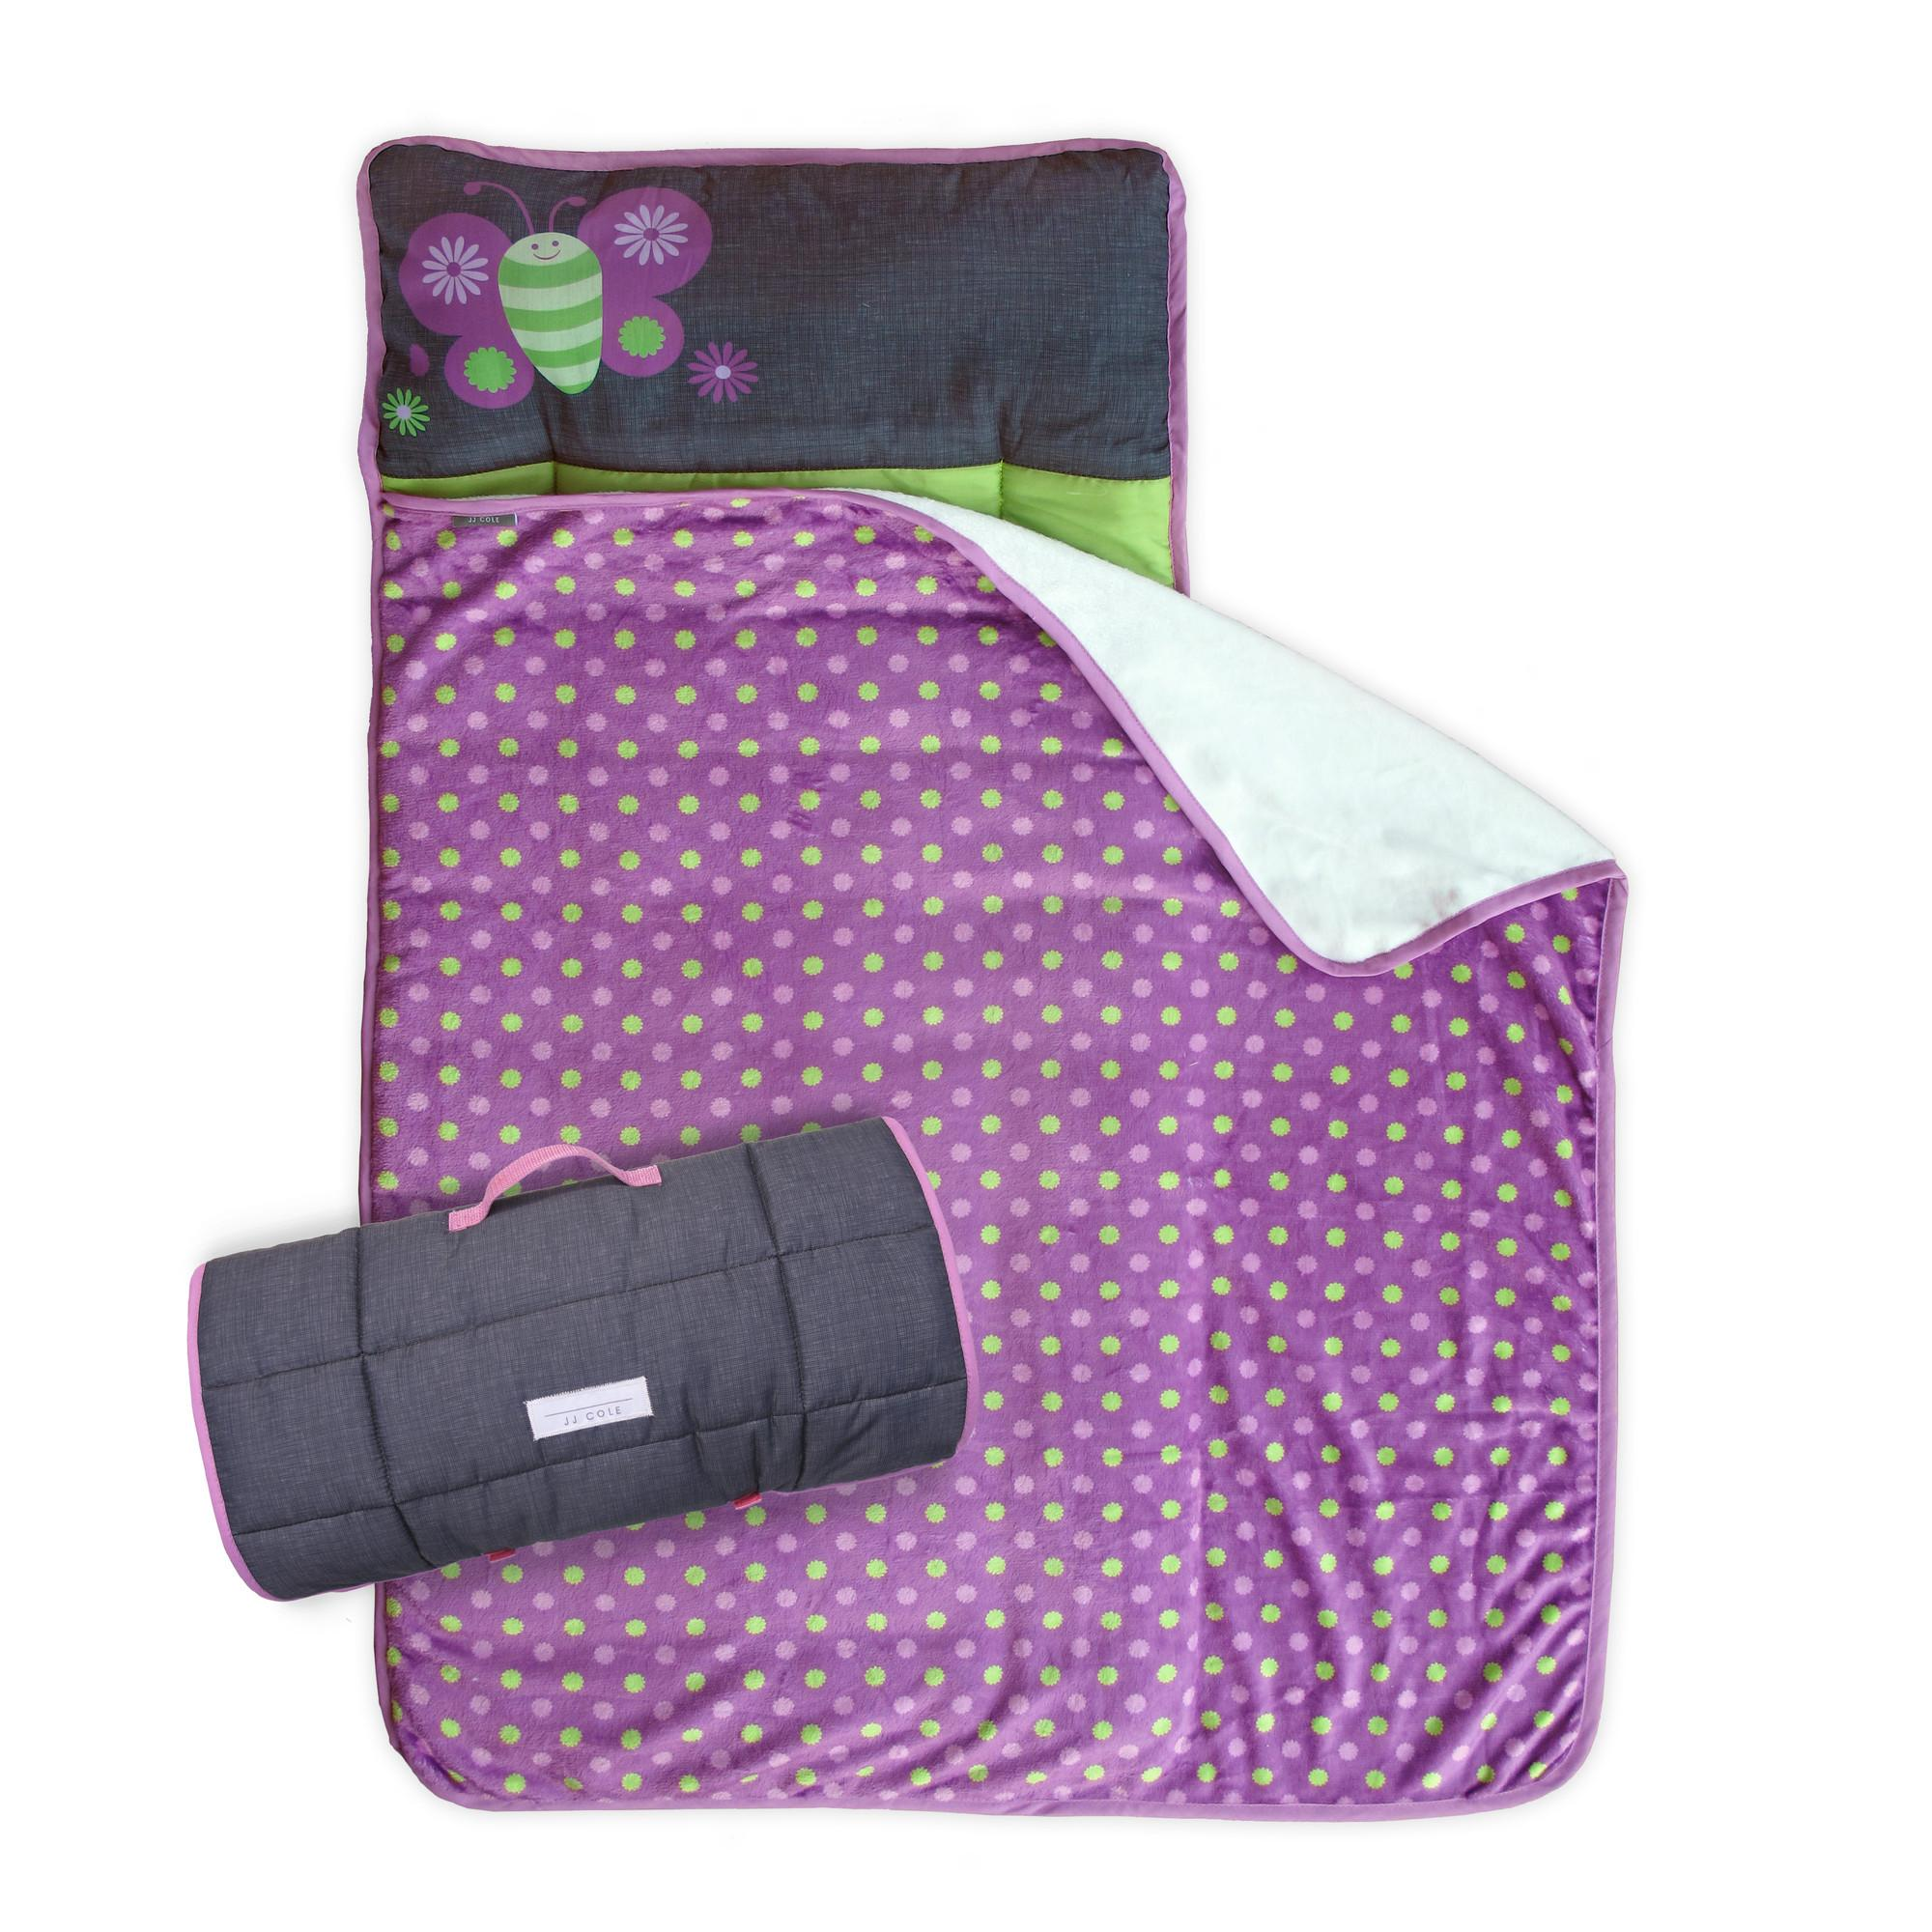 nap mat pink bedding mattress orders on product overstock daycare shipping first my toddler bath mats over free